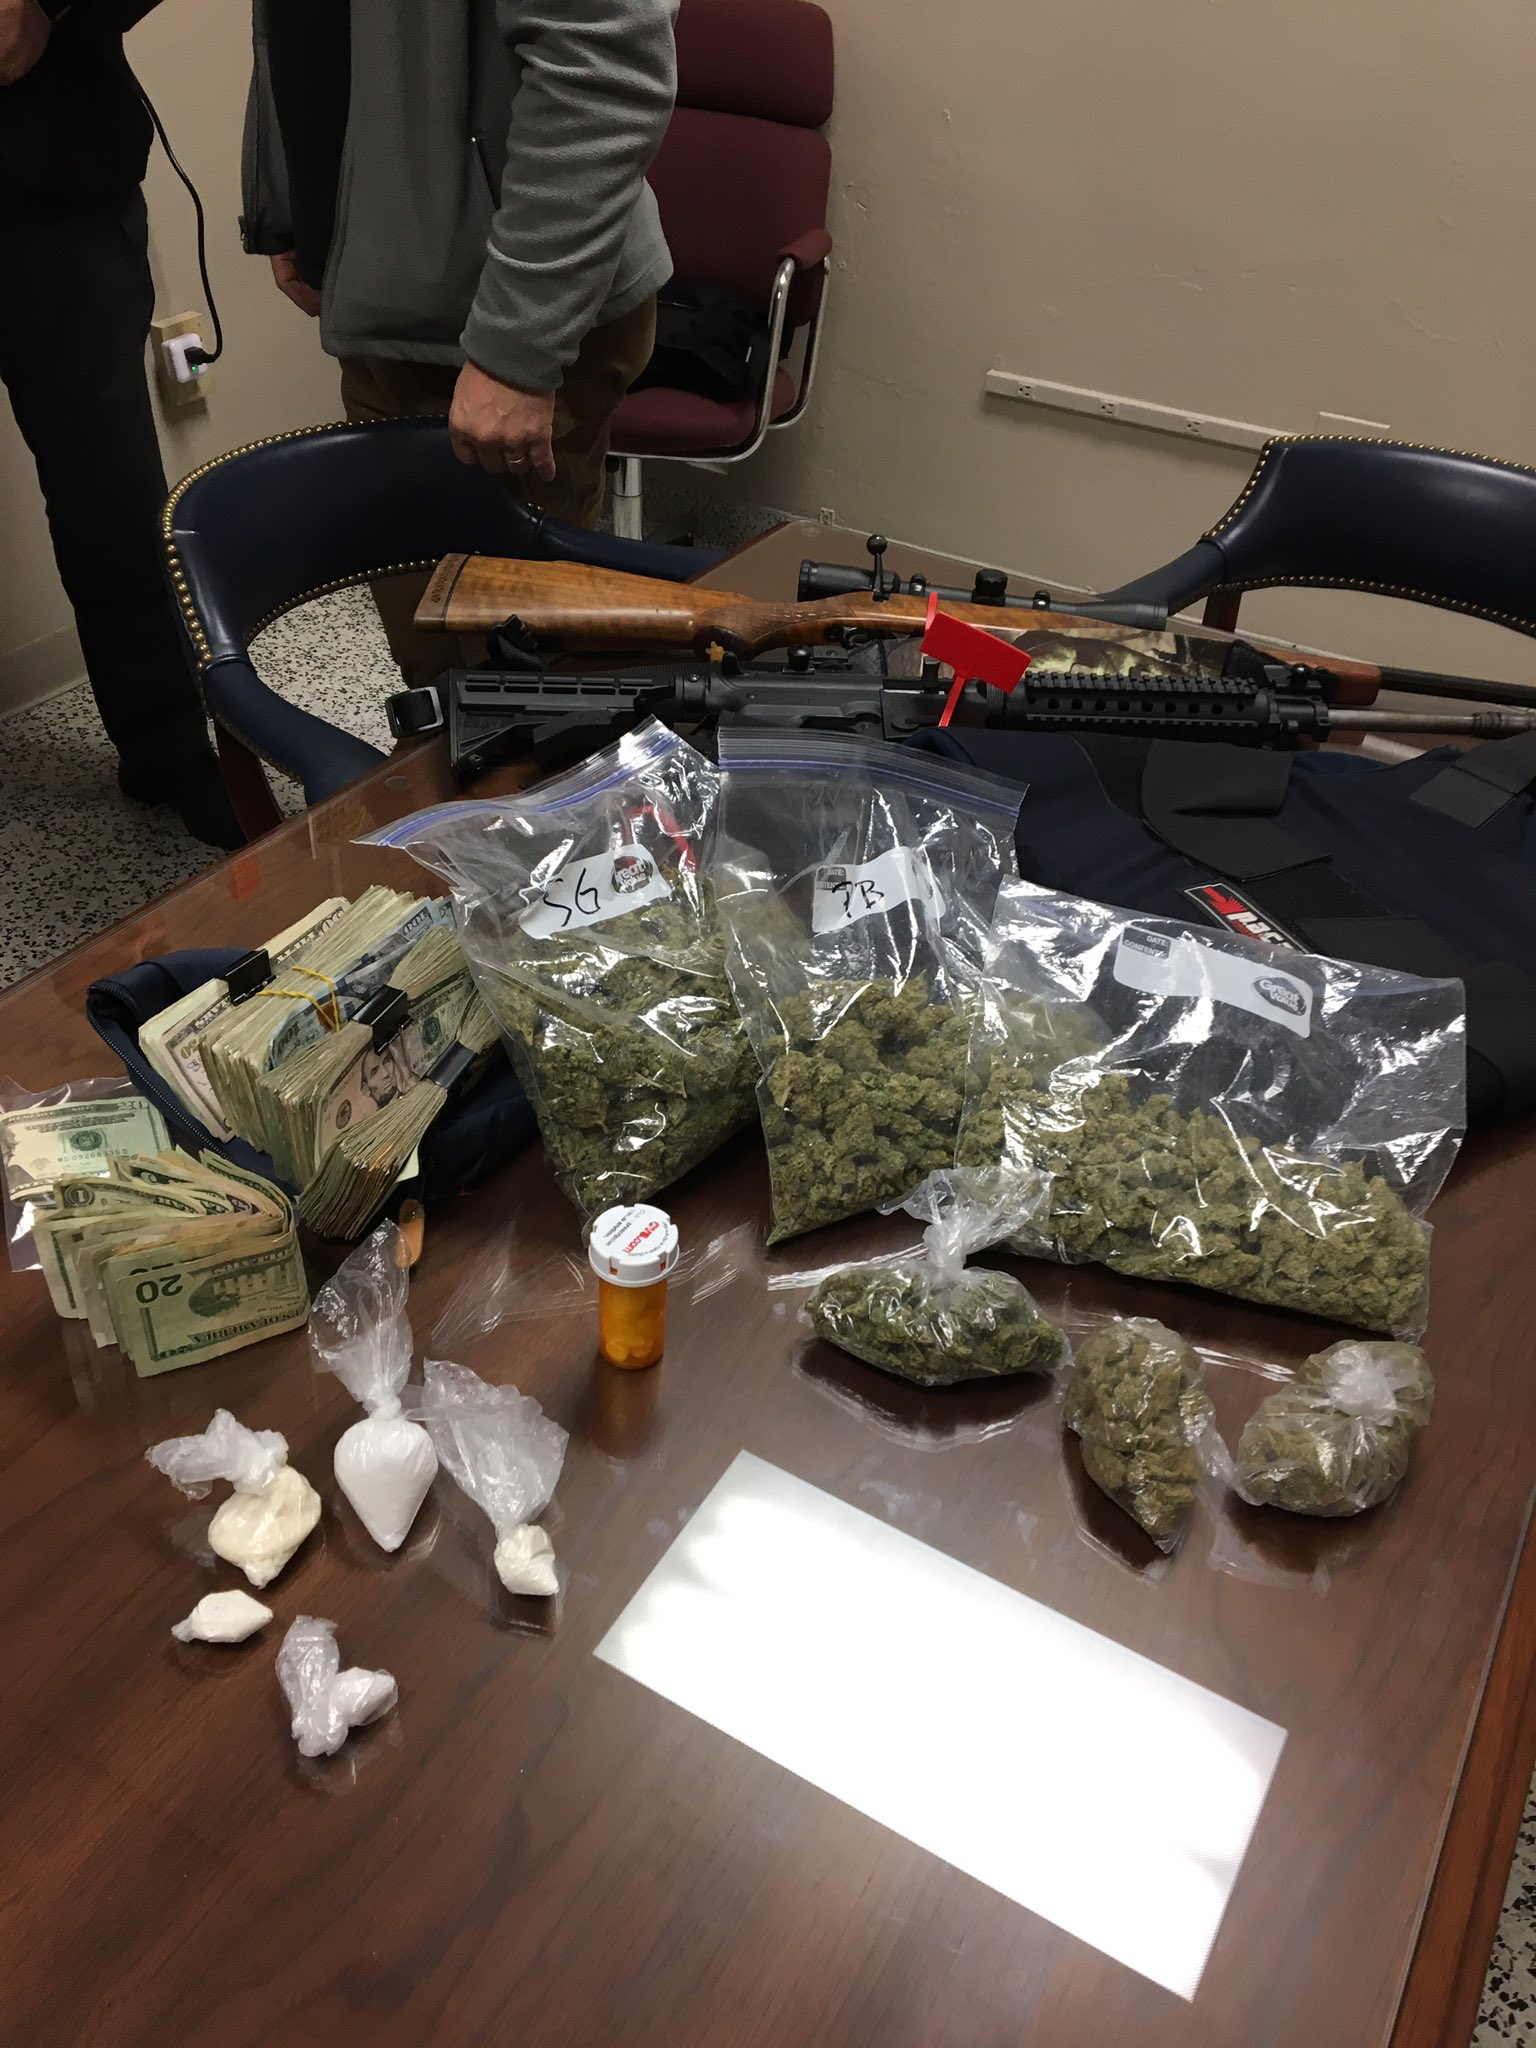 Pennyrile Narcotics on Twitter: